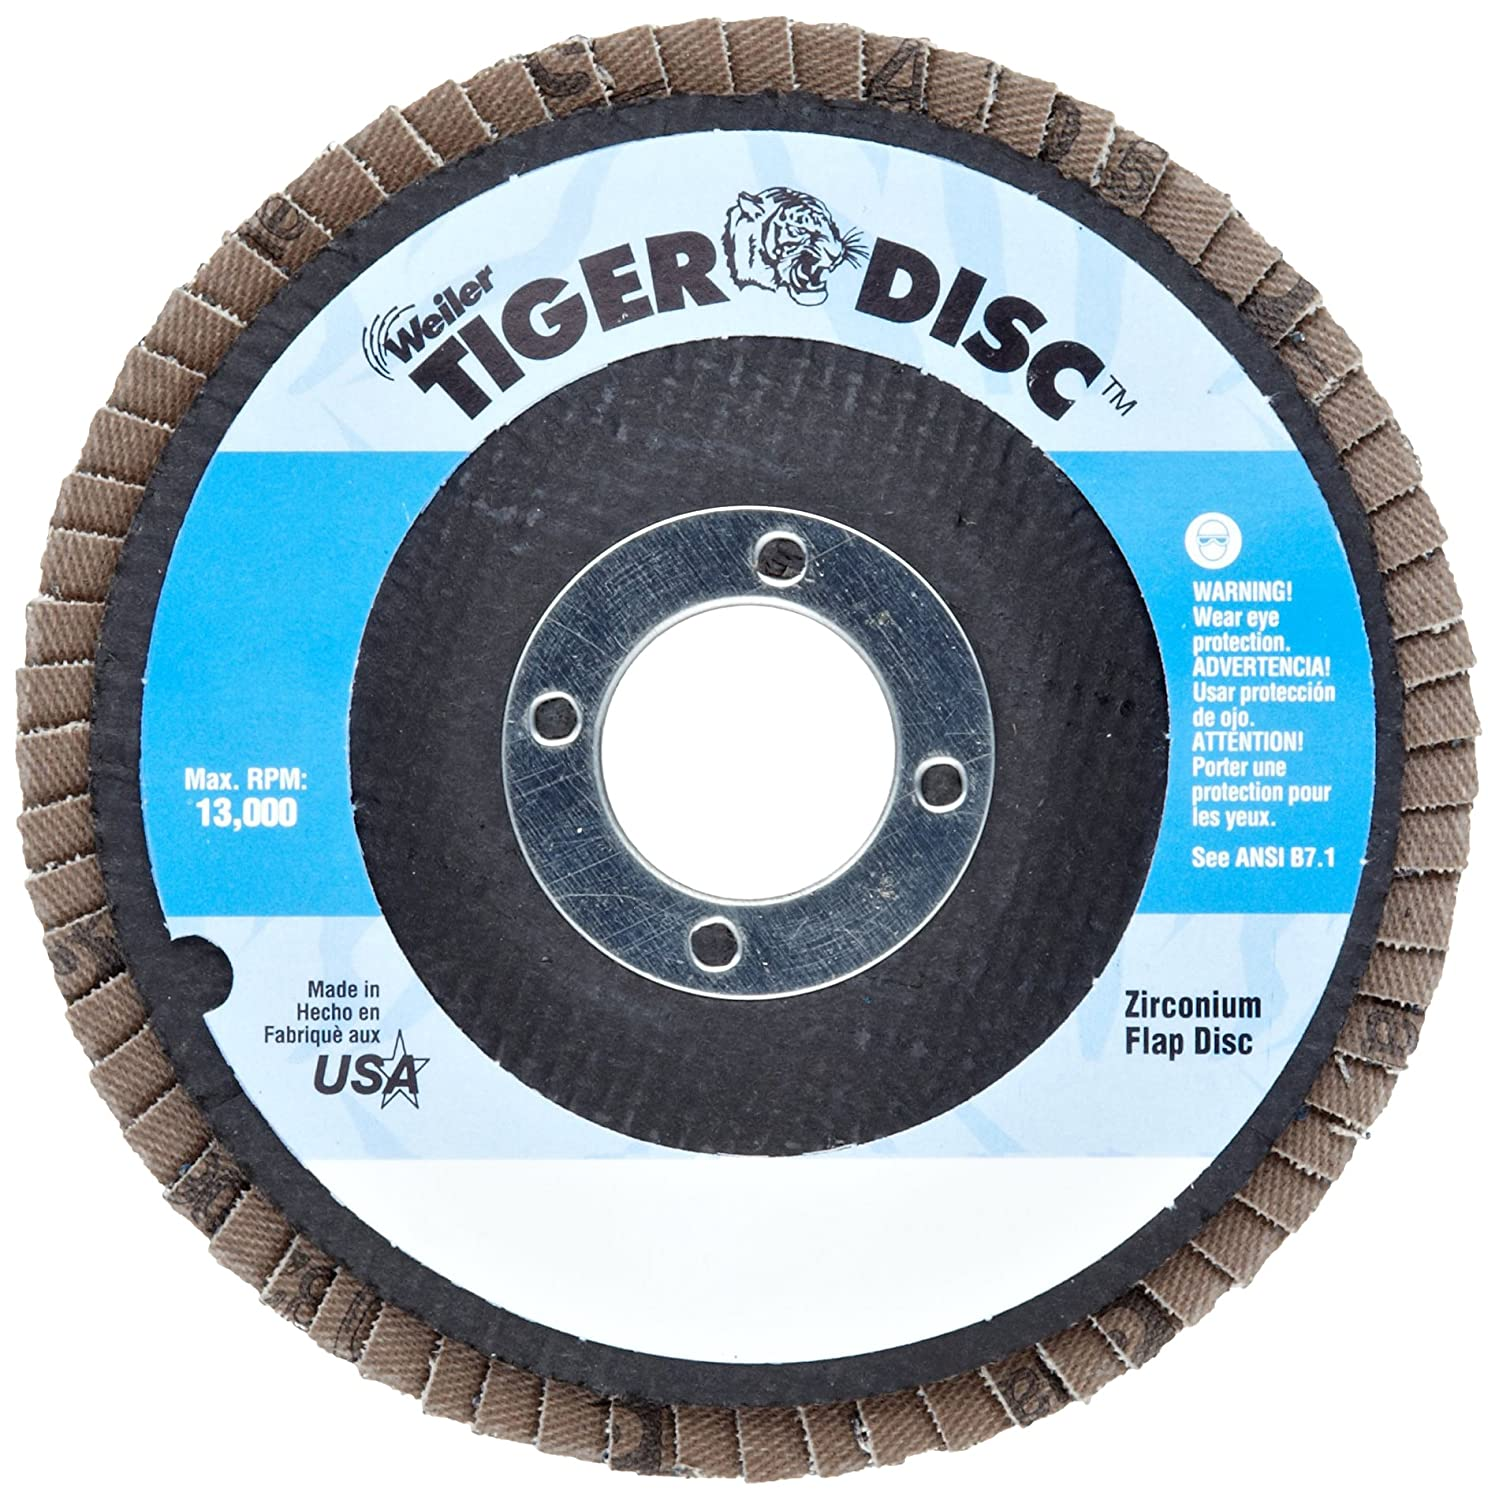 4-1//2 Dia Threaded Hole Composite Backing Pack of 1 4-1//2 Dia. Zirconia Alumina Type 29 Weiler Corporation 50006 Weiler Trimmable Tiger Abrasive Flap Disc 40 Grit